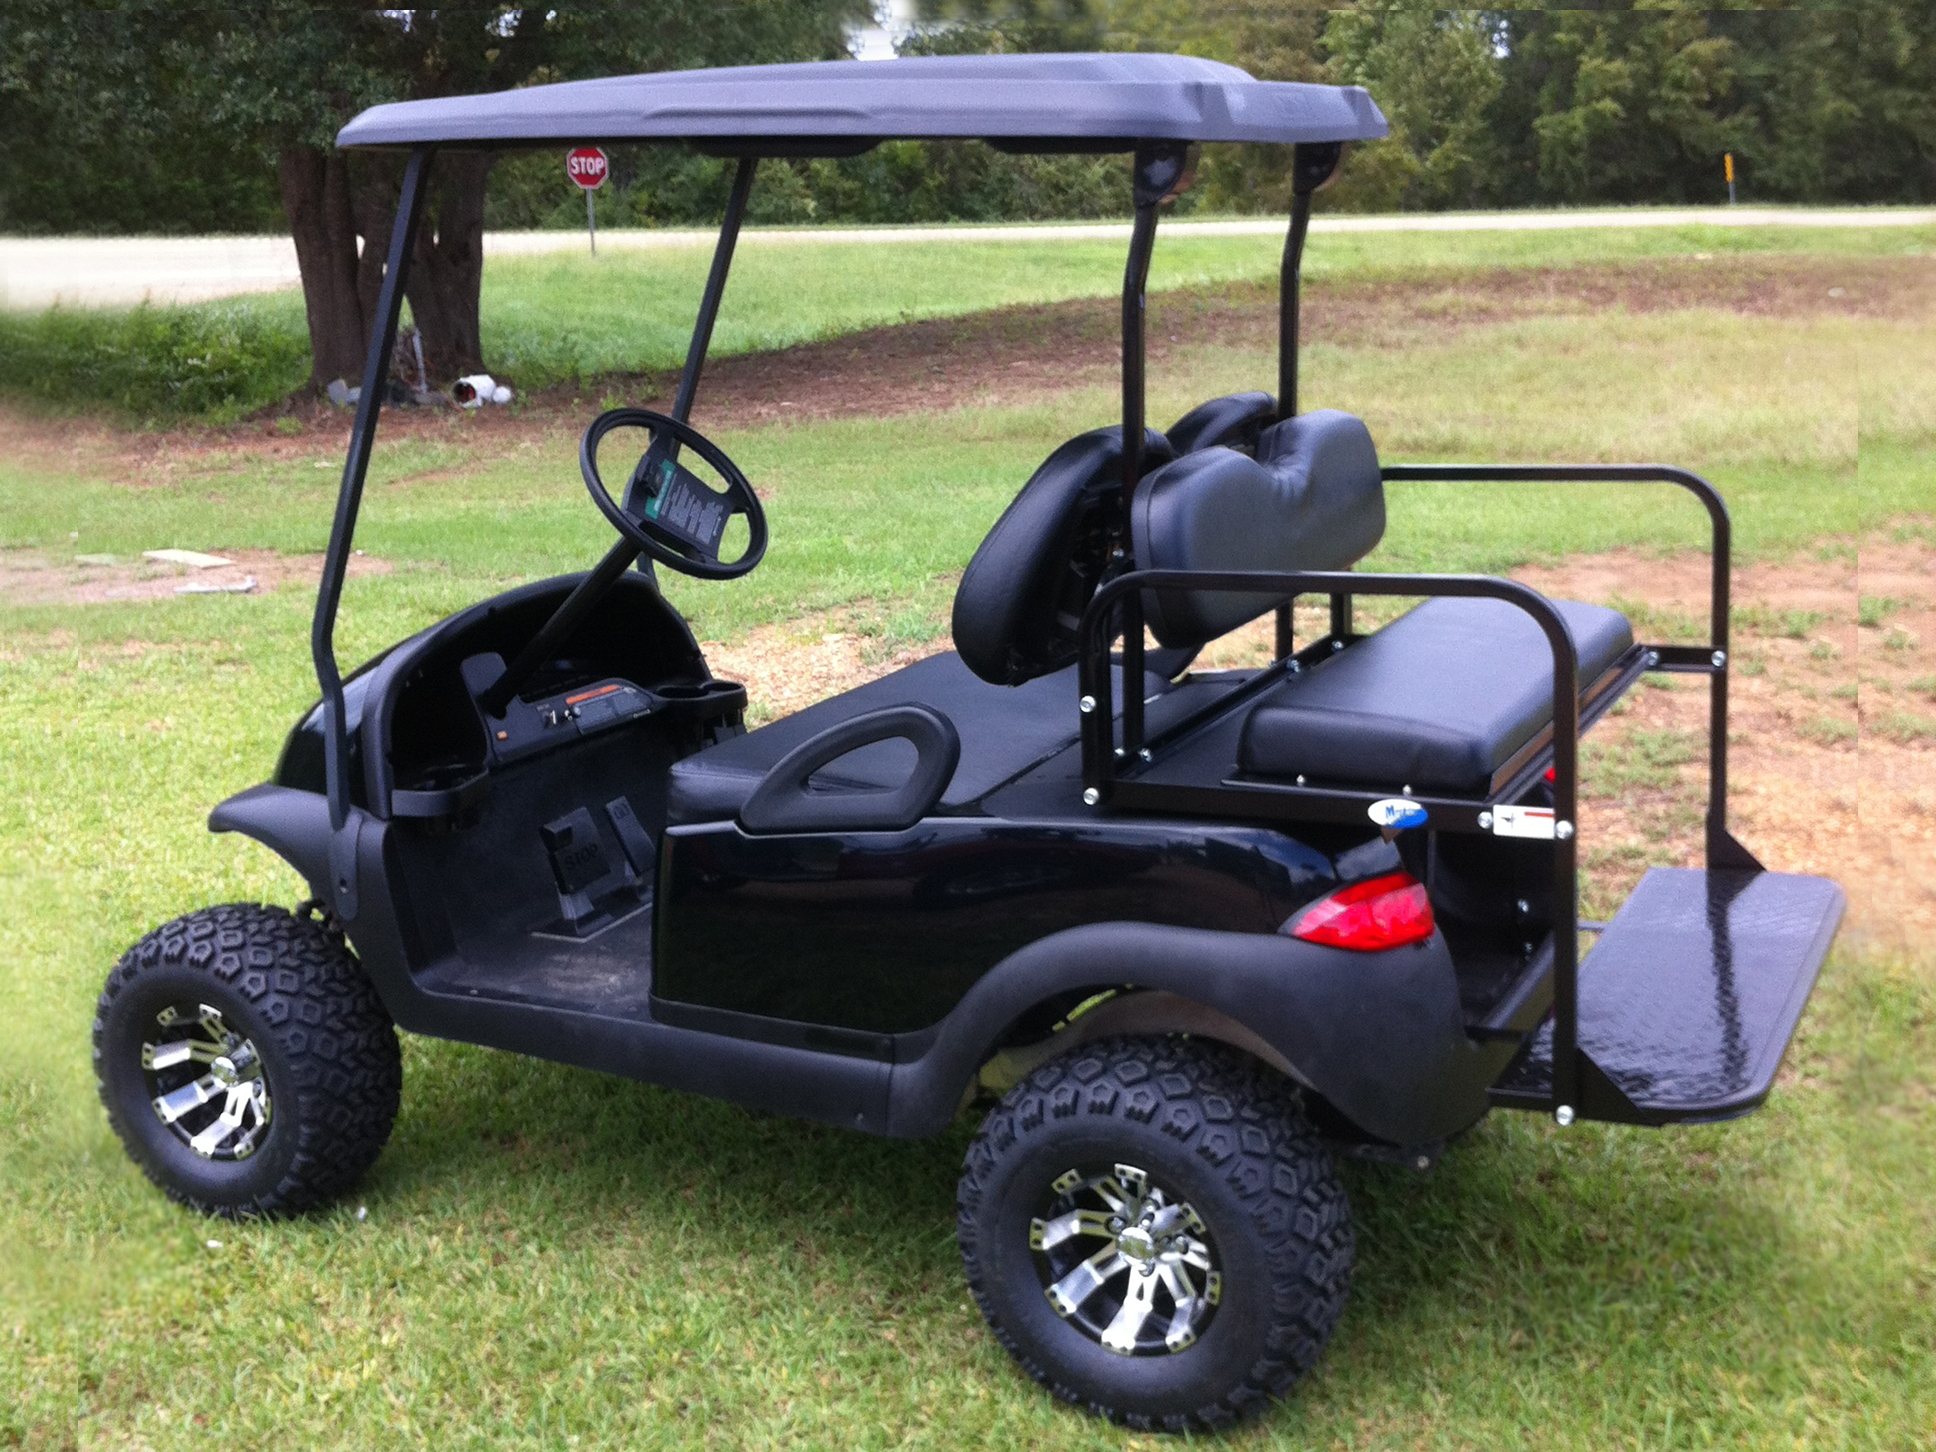 Finding the Right Golf Cart Accessories – How to Choose the Best